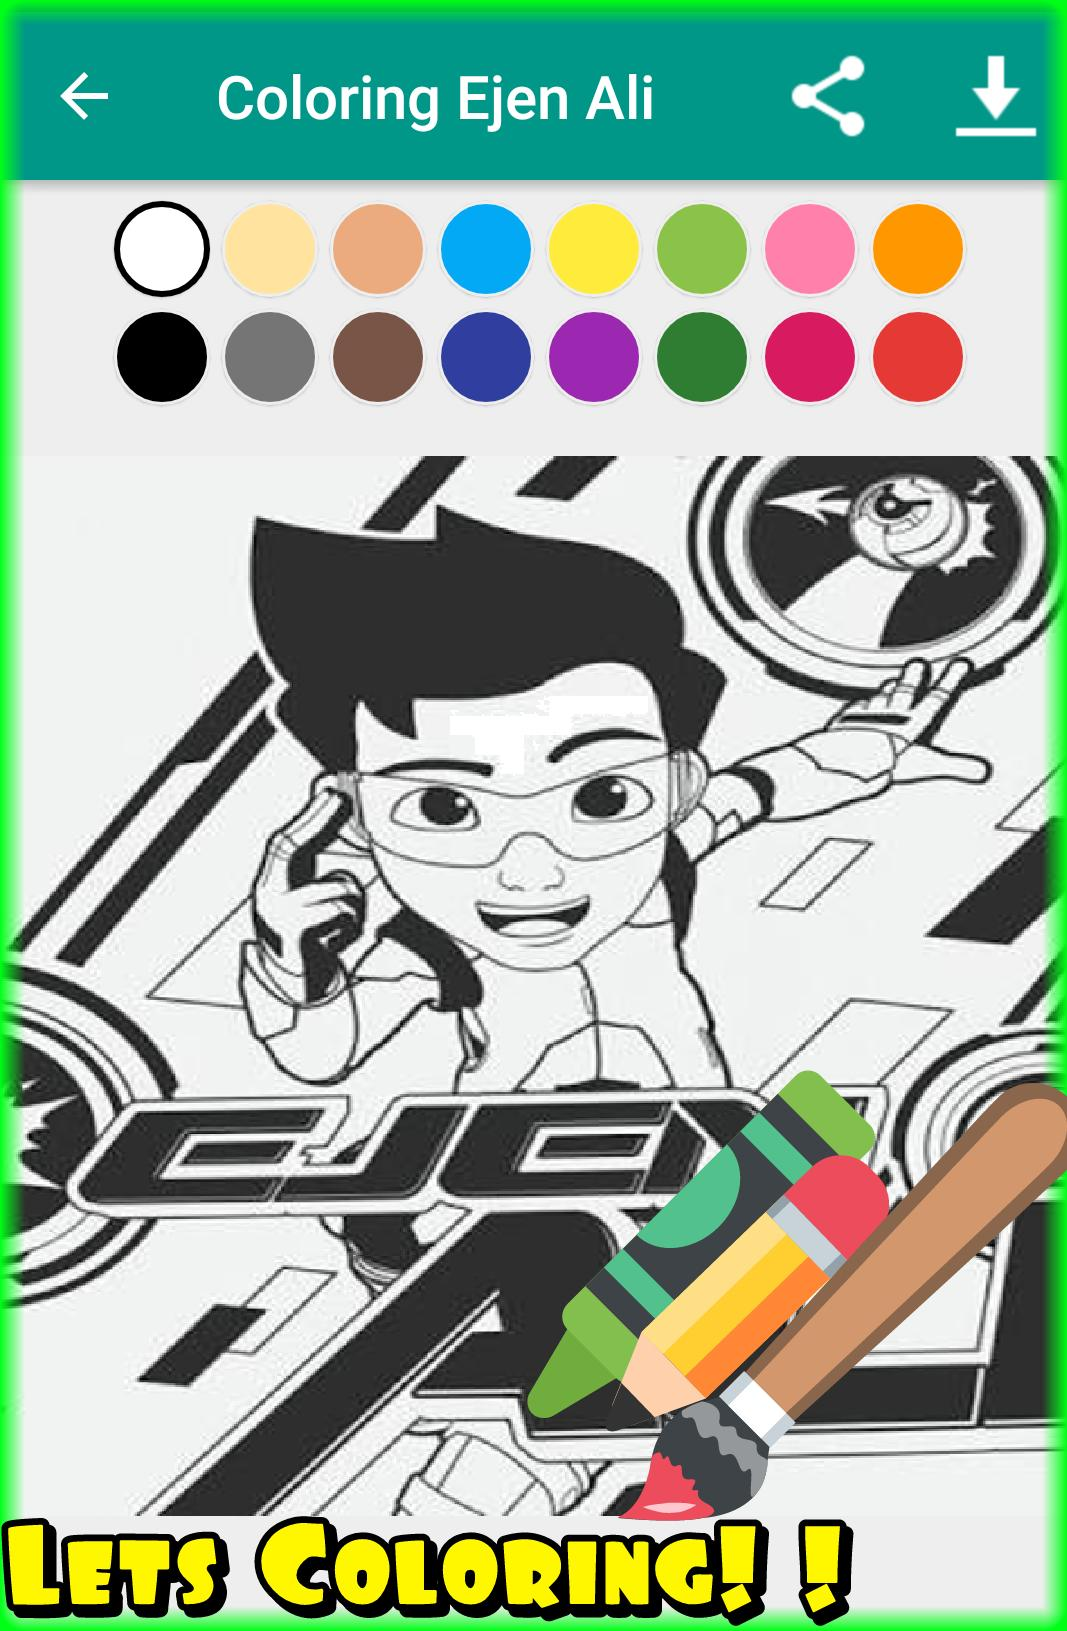 Ejen Ali Coloring Book Games Free Apps For Android APK